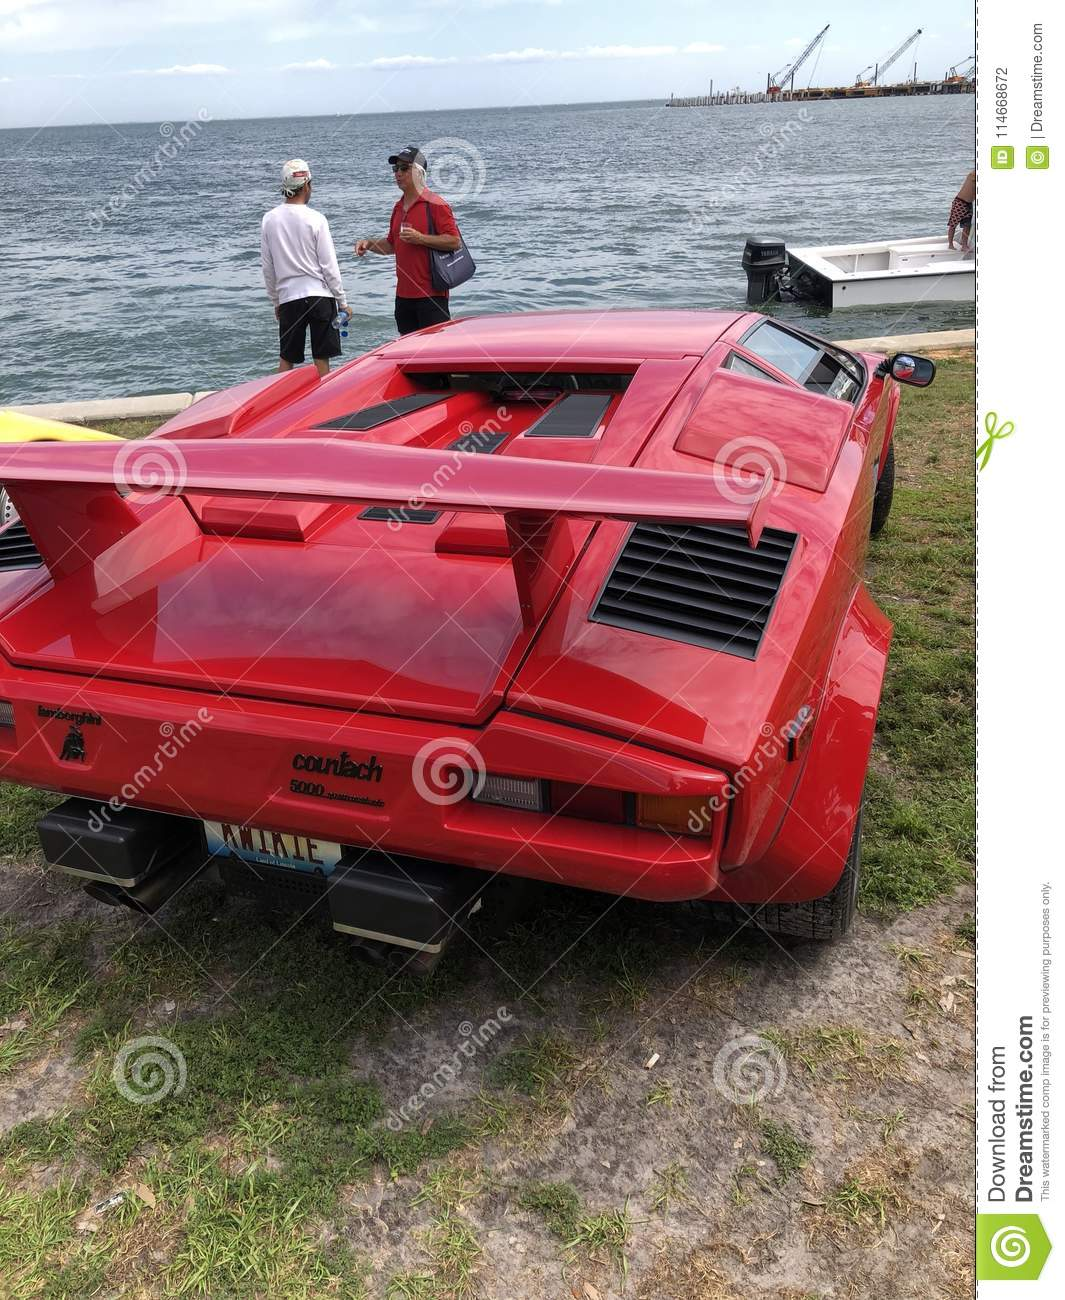 Countach Lamborghini Editorial Photography Image Of Beach 114668672